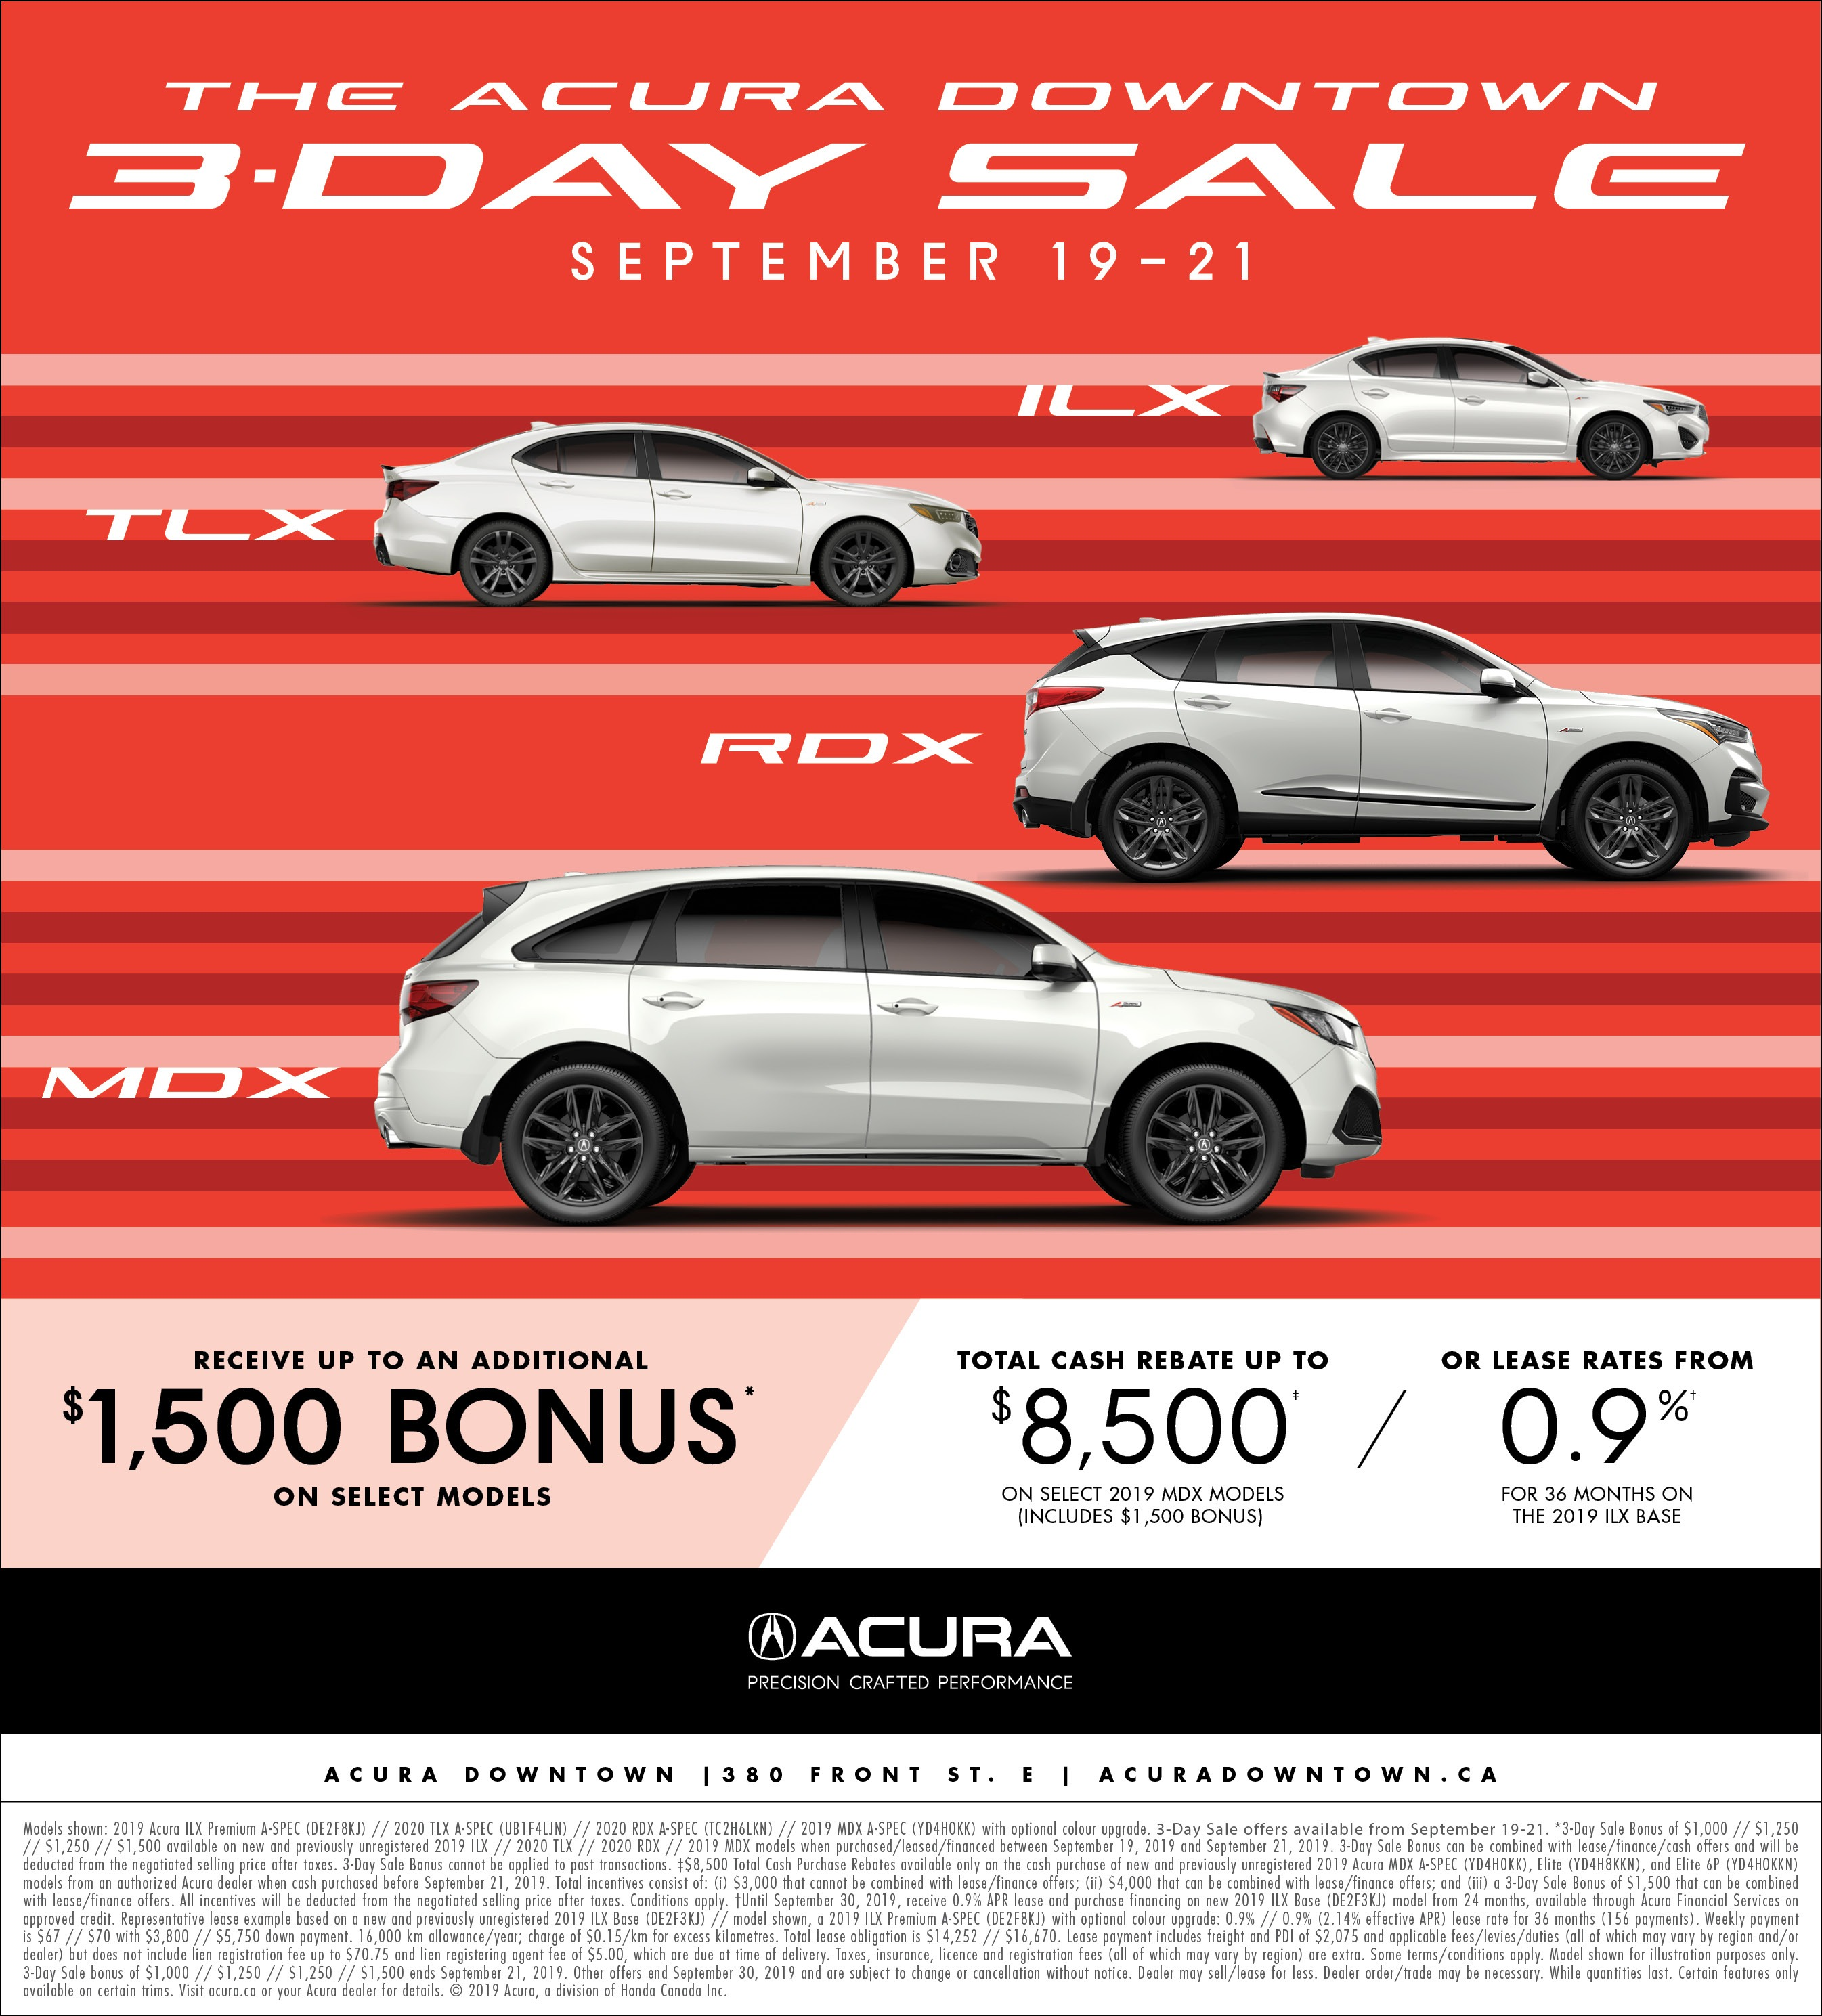 Acura Downtown 3-Day Sale